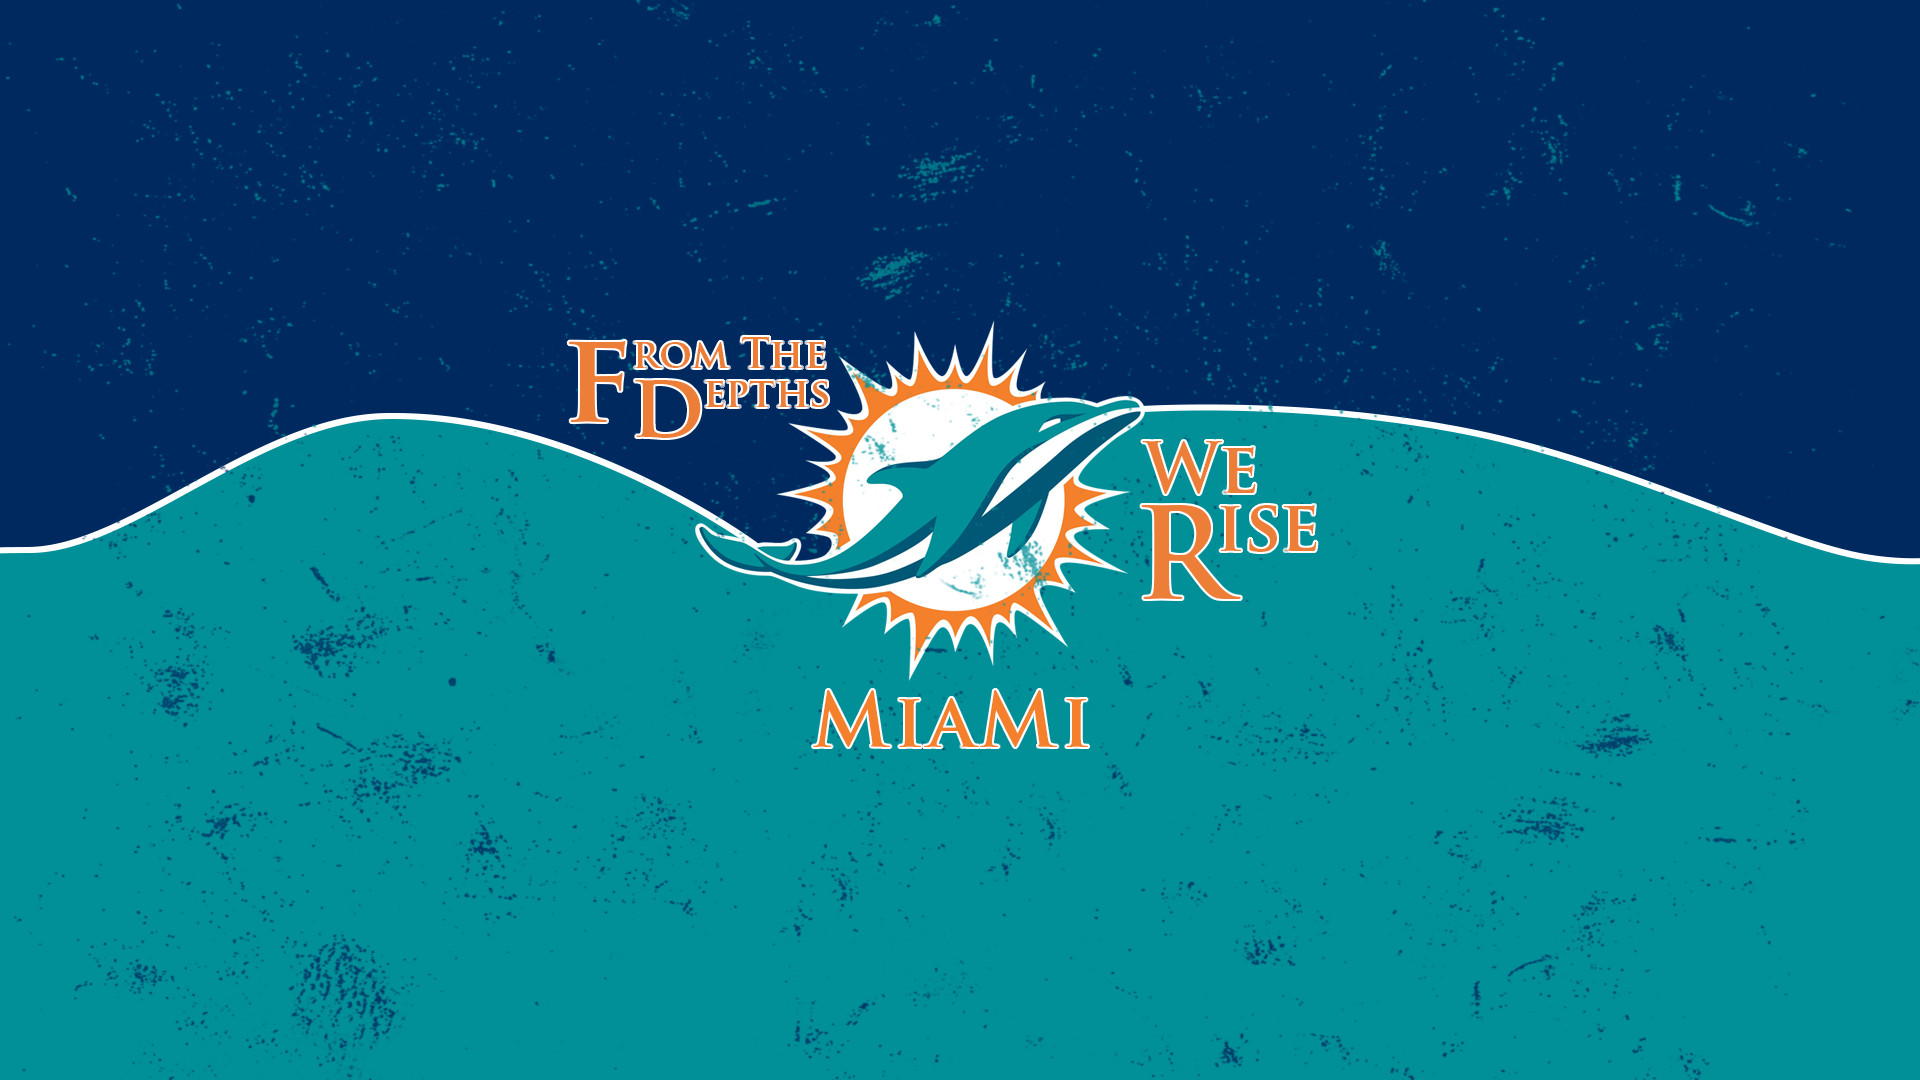 miami dolphins wallpaper iphone 6